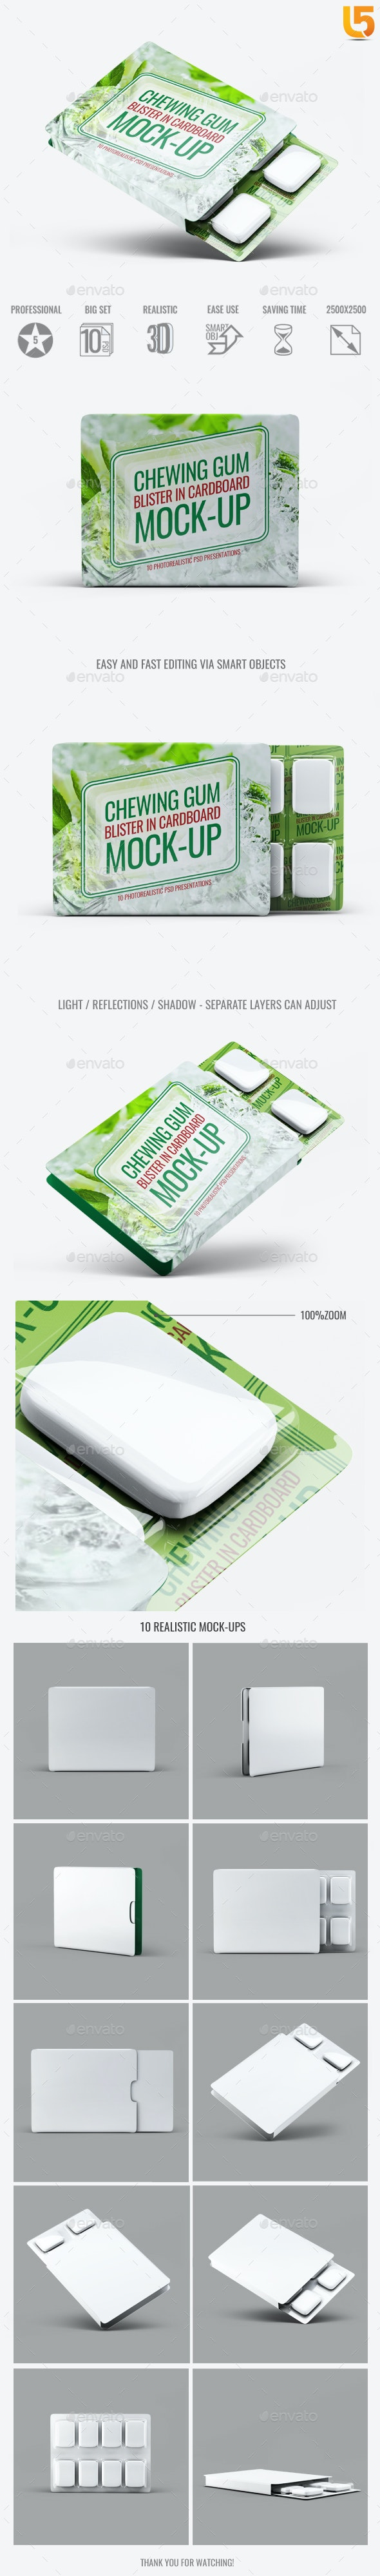 Chewing Gum Blister in Cardboard Mock-Up - Food and Drink Packaging